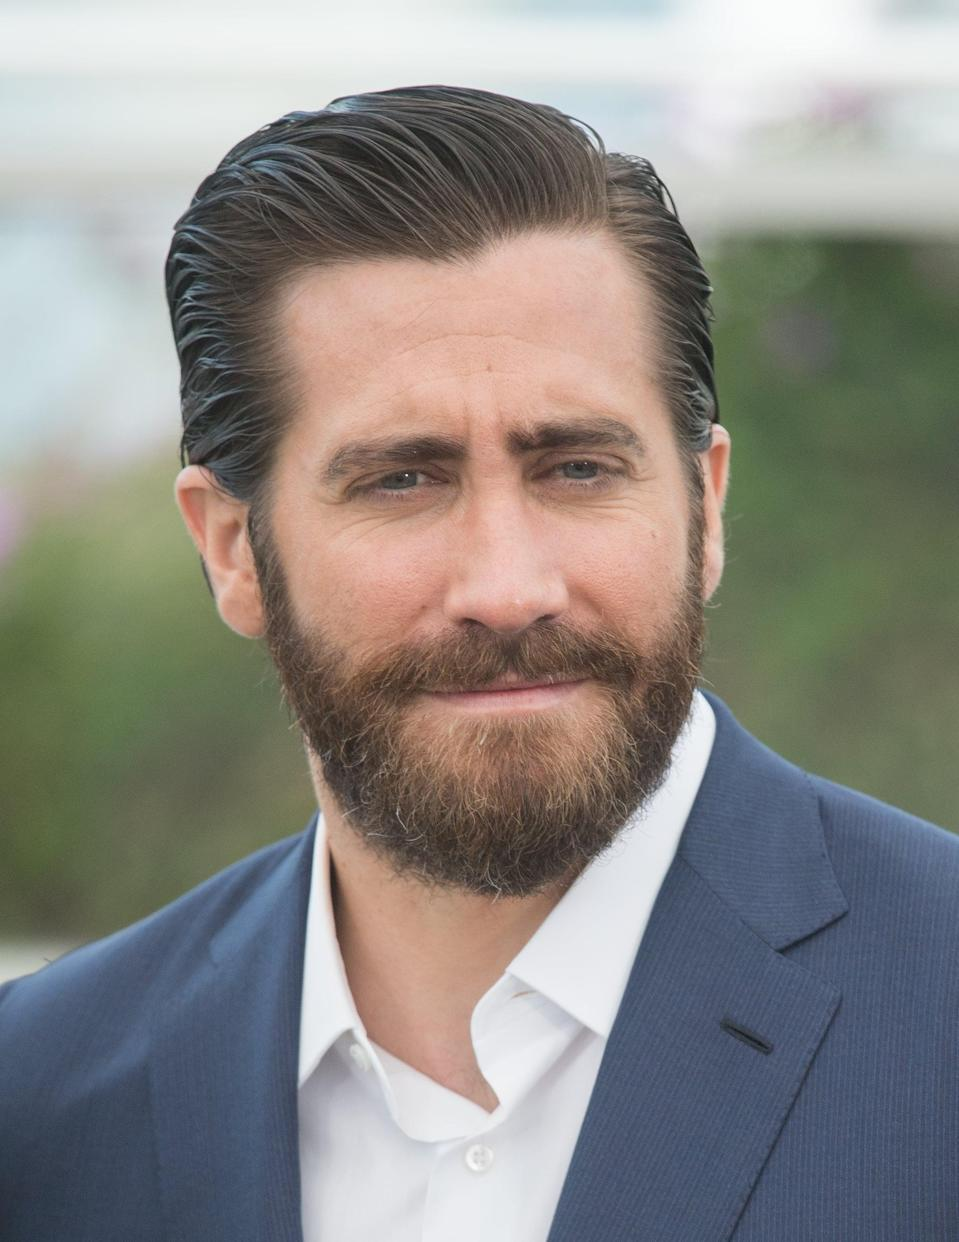 """<p>Jake and Minka were reported to have had a fling in 2012 after going on a few dates. According to <strong>E! Online</strong>, <a href=""""http://www.eonline.com/news/510267/jake-gyllenhaal-and-minka-kelly-reportedly-hooked-up-again"""" class=""""link rapid-noclick-resp"""" rel=""""nofollow noopener"""" target=""""_blank"""" data-ylk=""""slk:they reconnected two years later"""">they reconnected two years later</a>. """"They hook up whenever they're single,"""" a source said.</p>"""